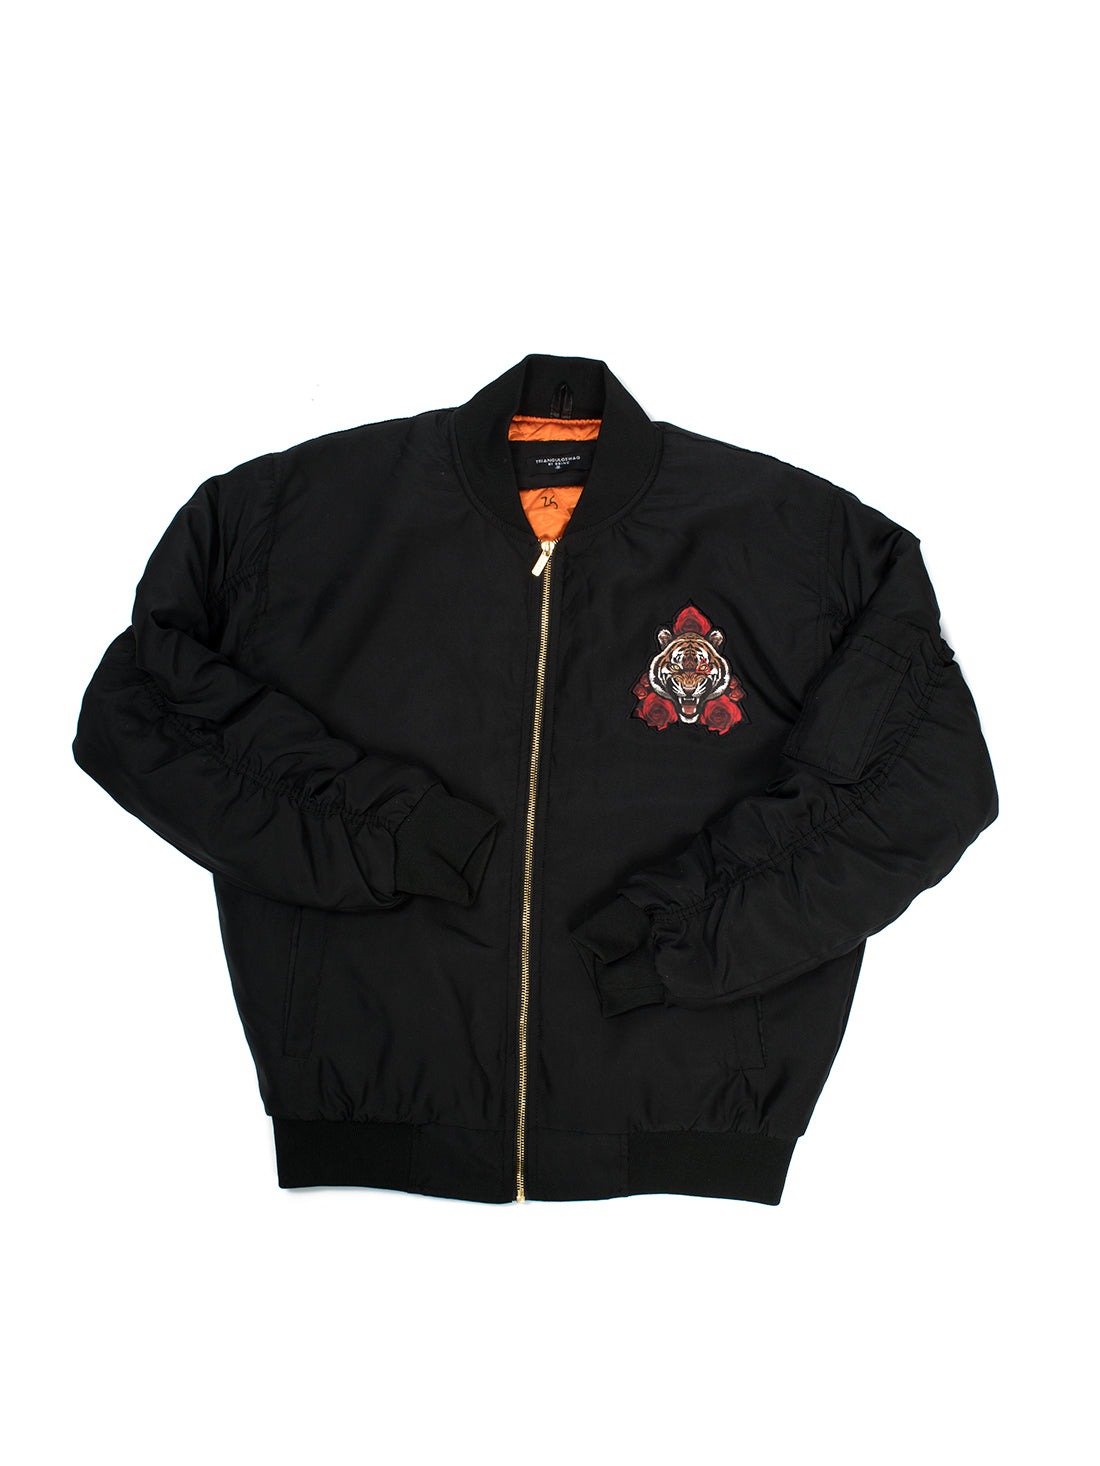 Le Tiger Black Nylon Jacket